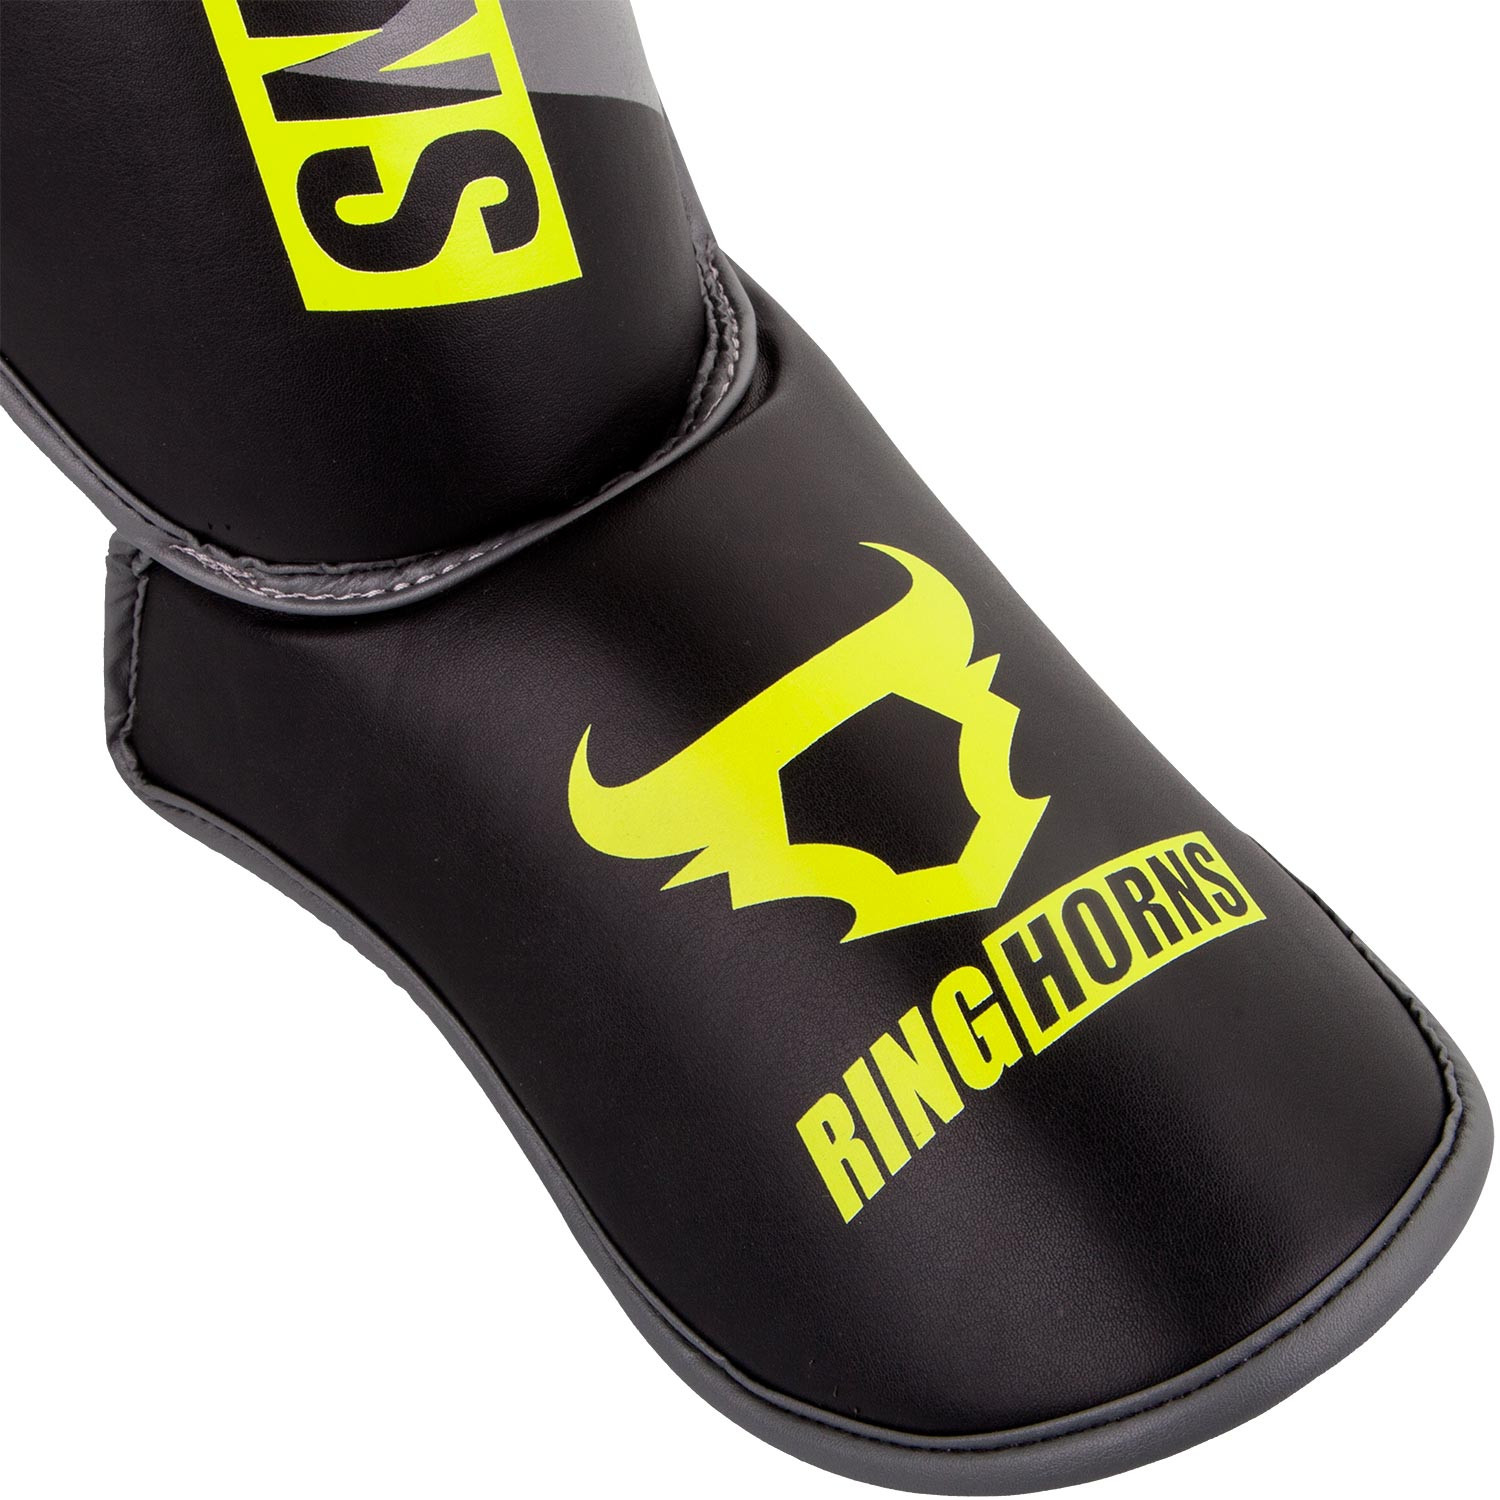 shinguards_insteps_charger_black_neoyellow_1500_03_1